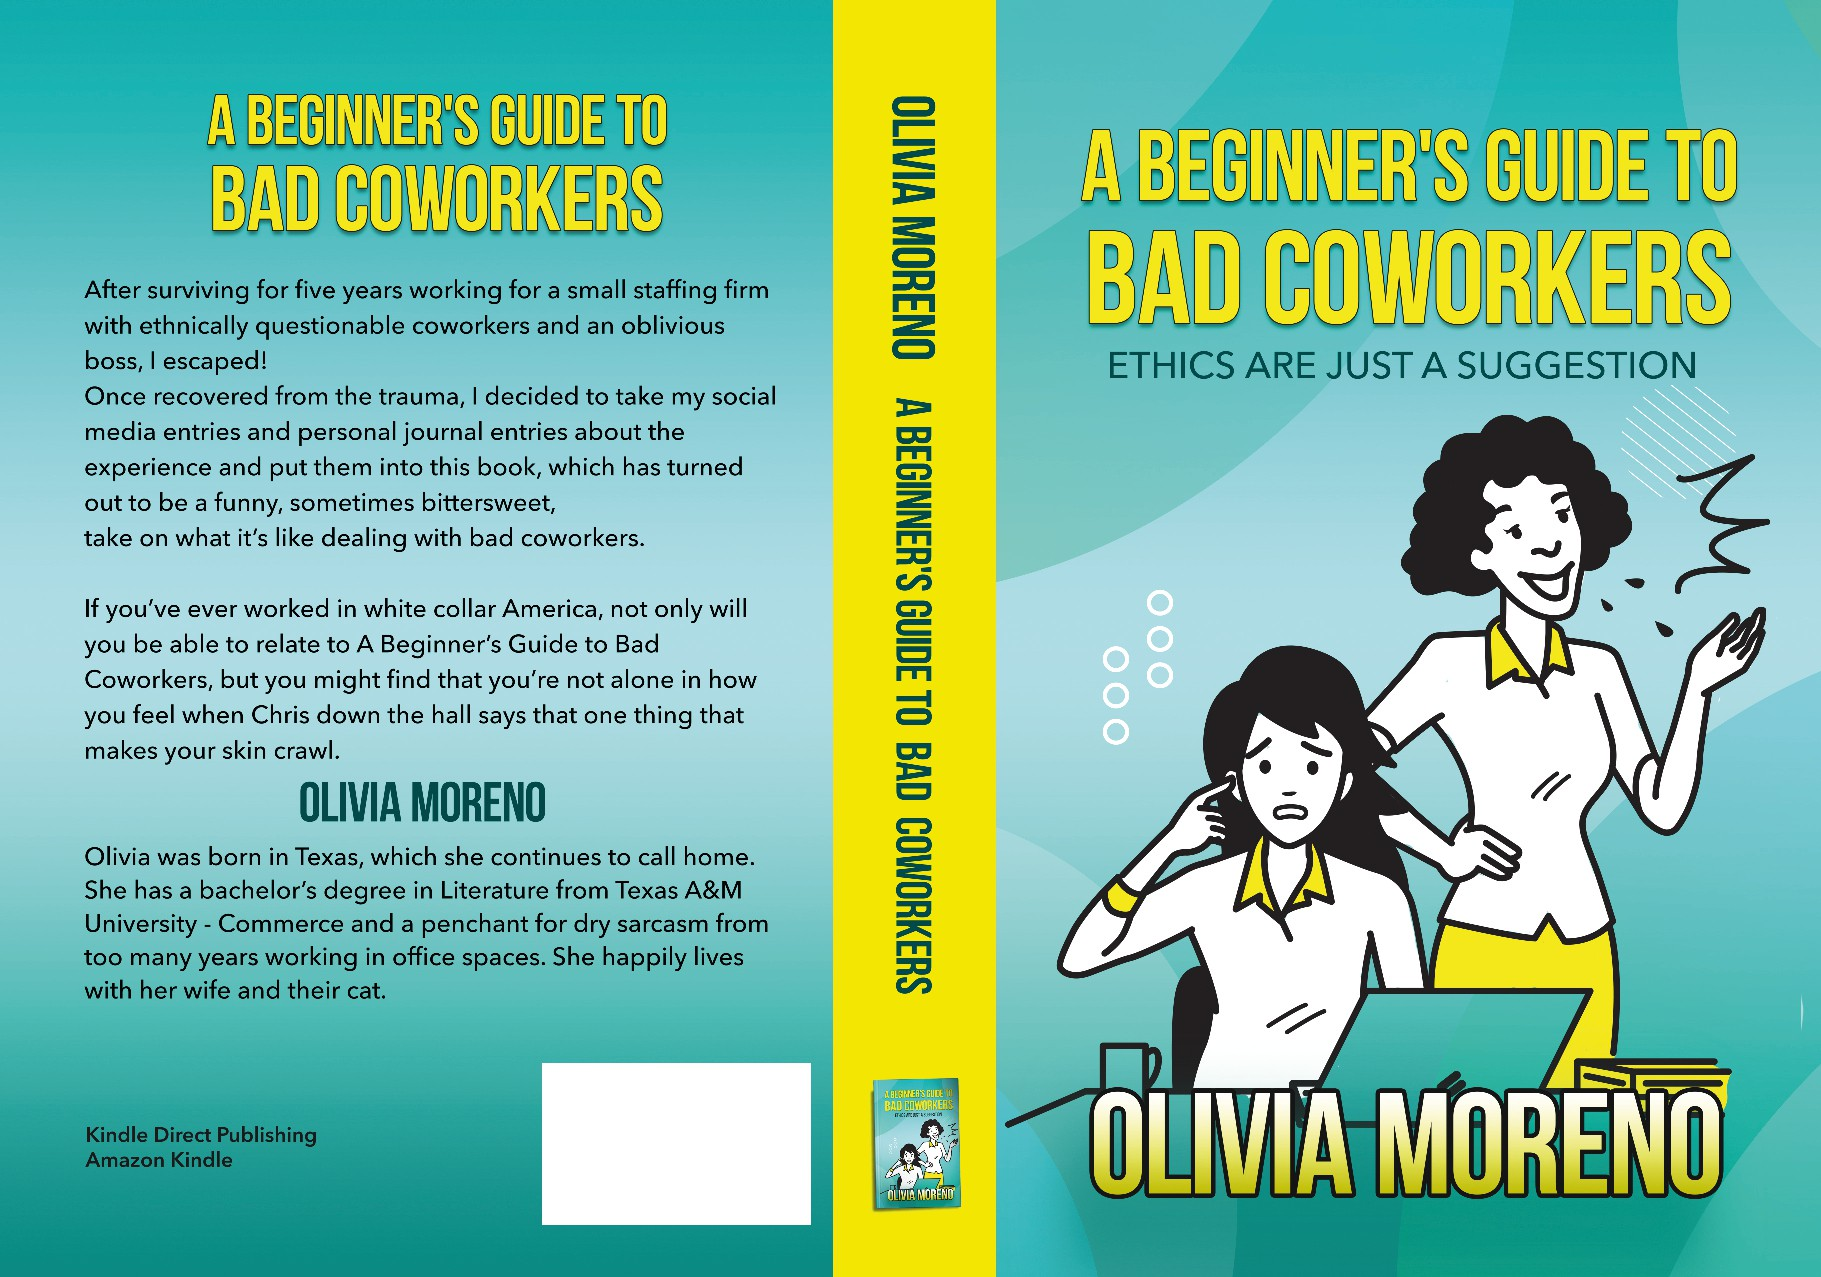 Bookcover for Comedic Book about Bad Coworkers